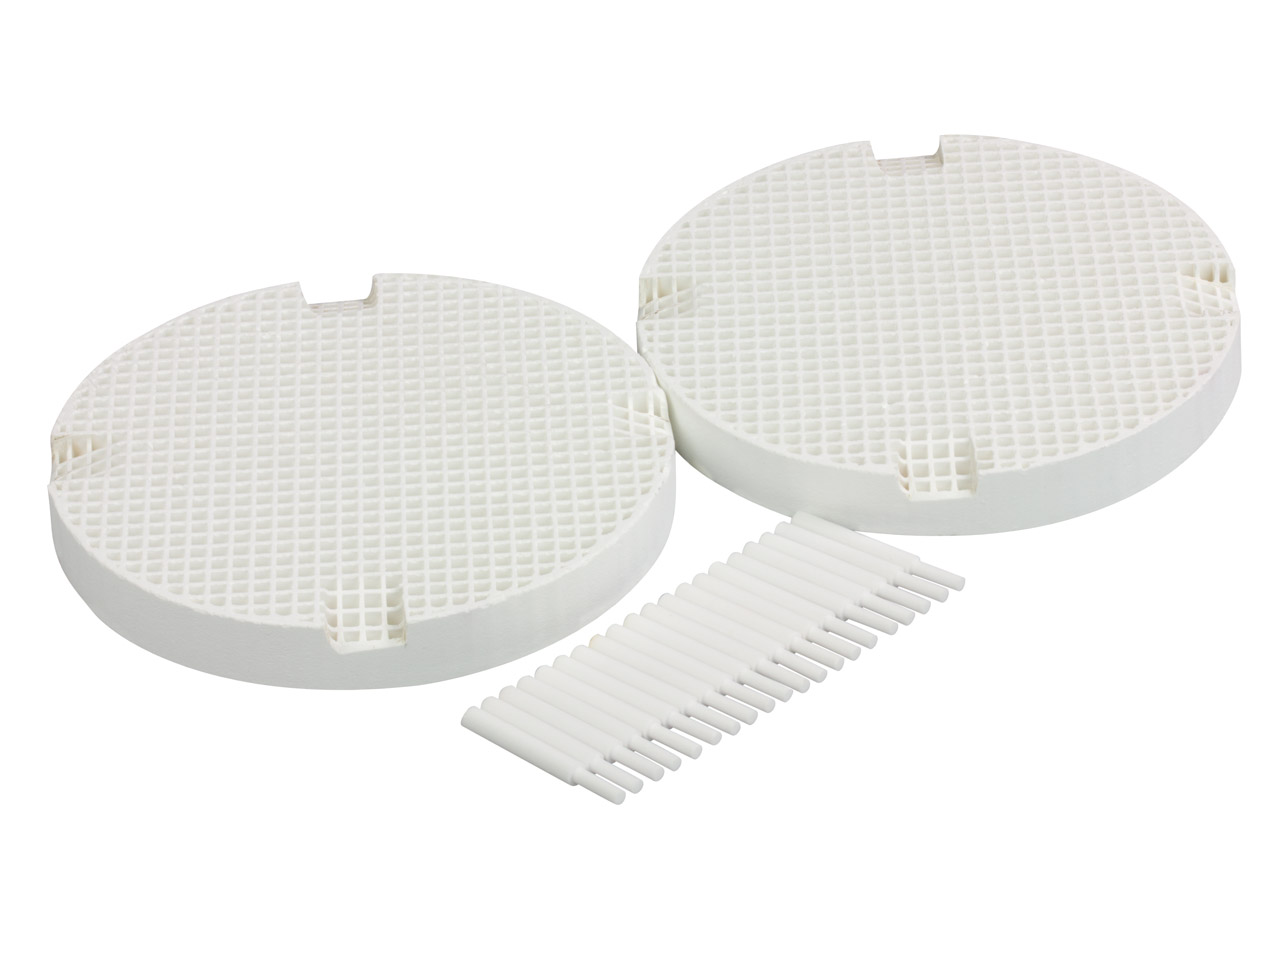 Round Honeycomb Soldering Board    Large Hole, Pack of 2 With 20      Ceramic Pins